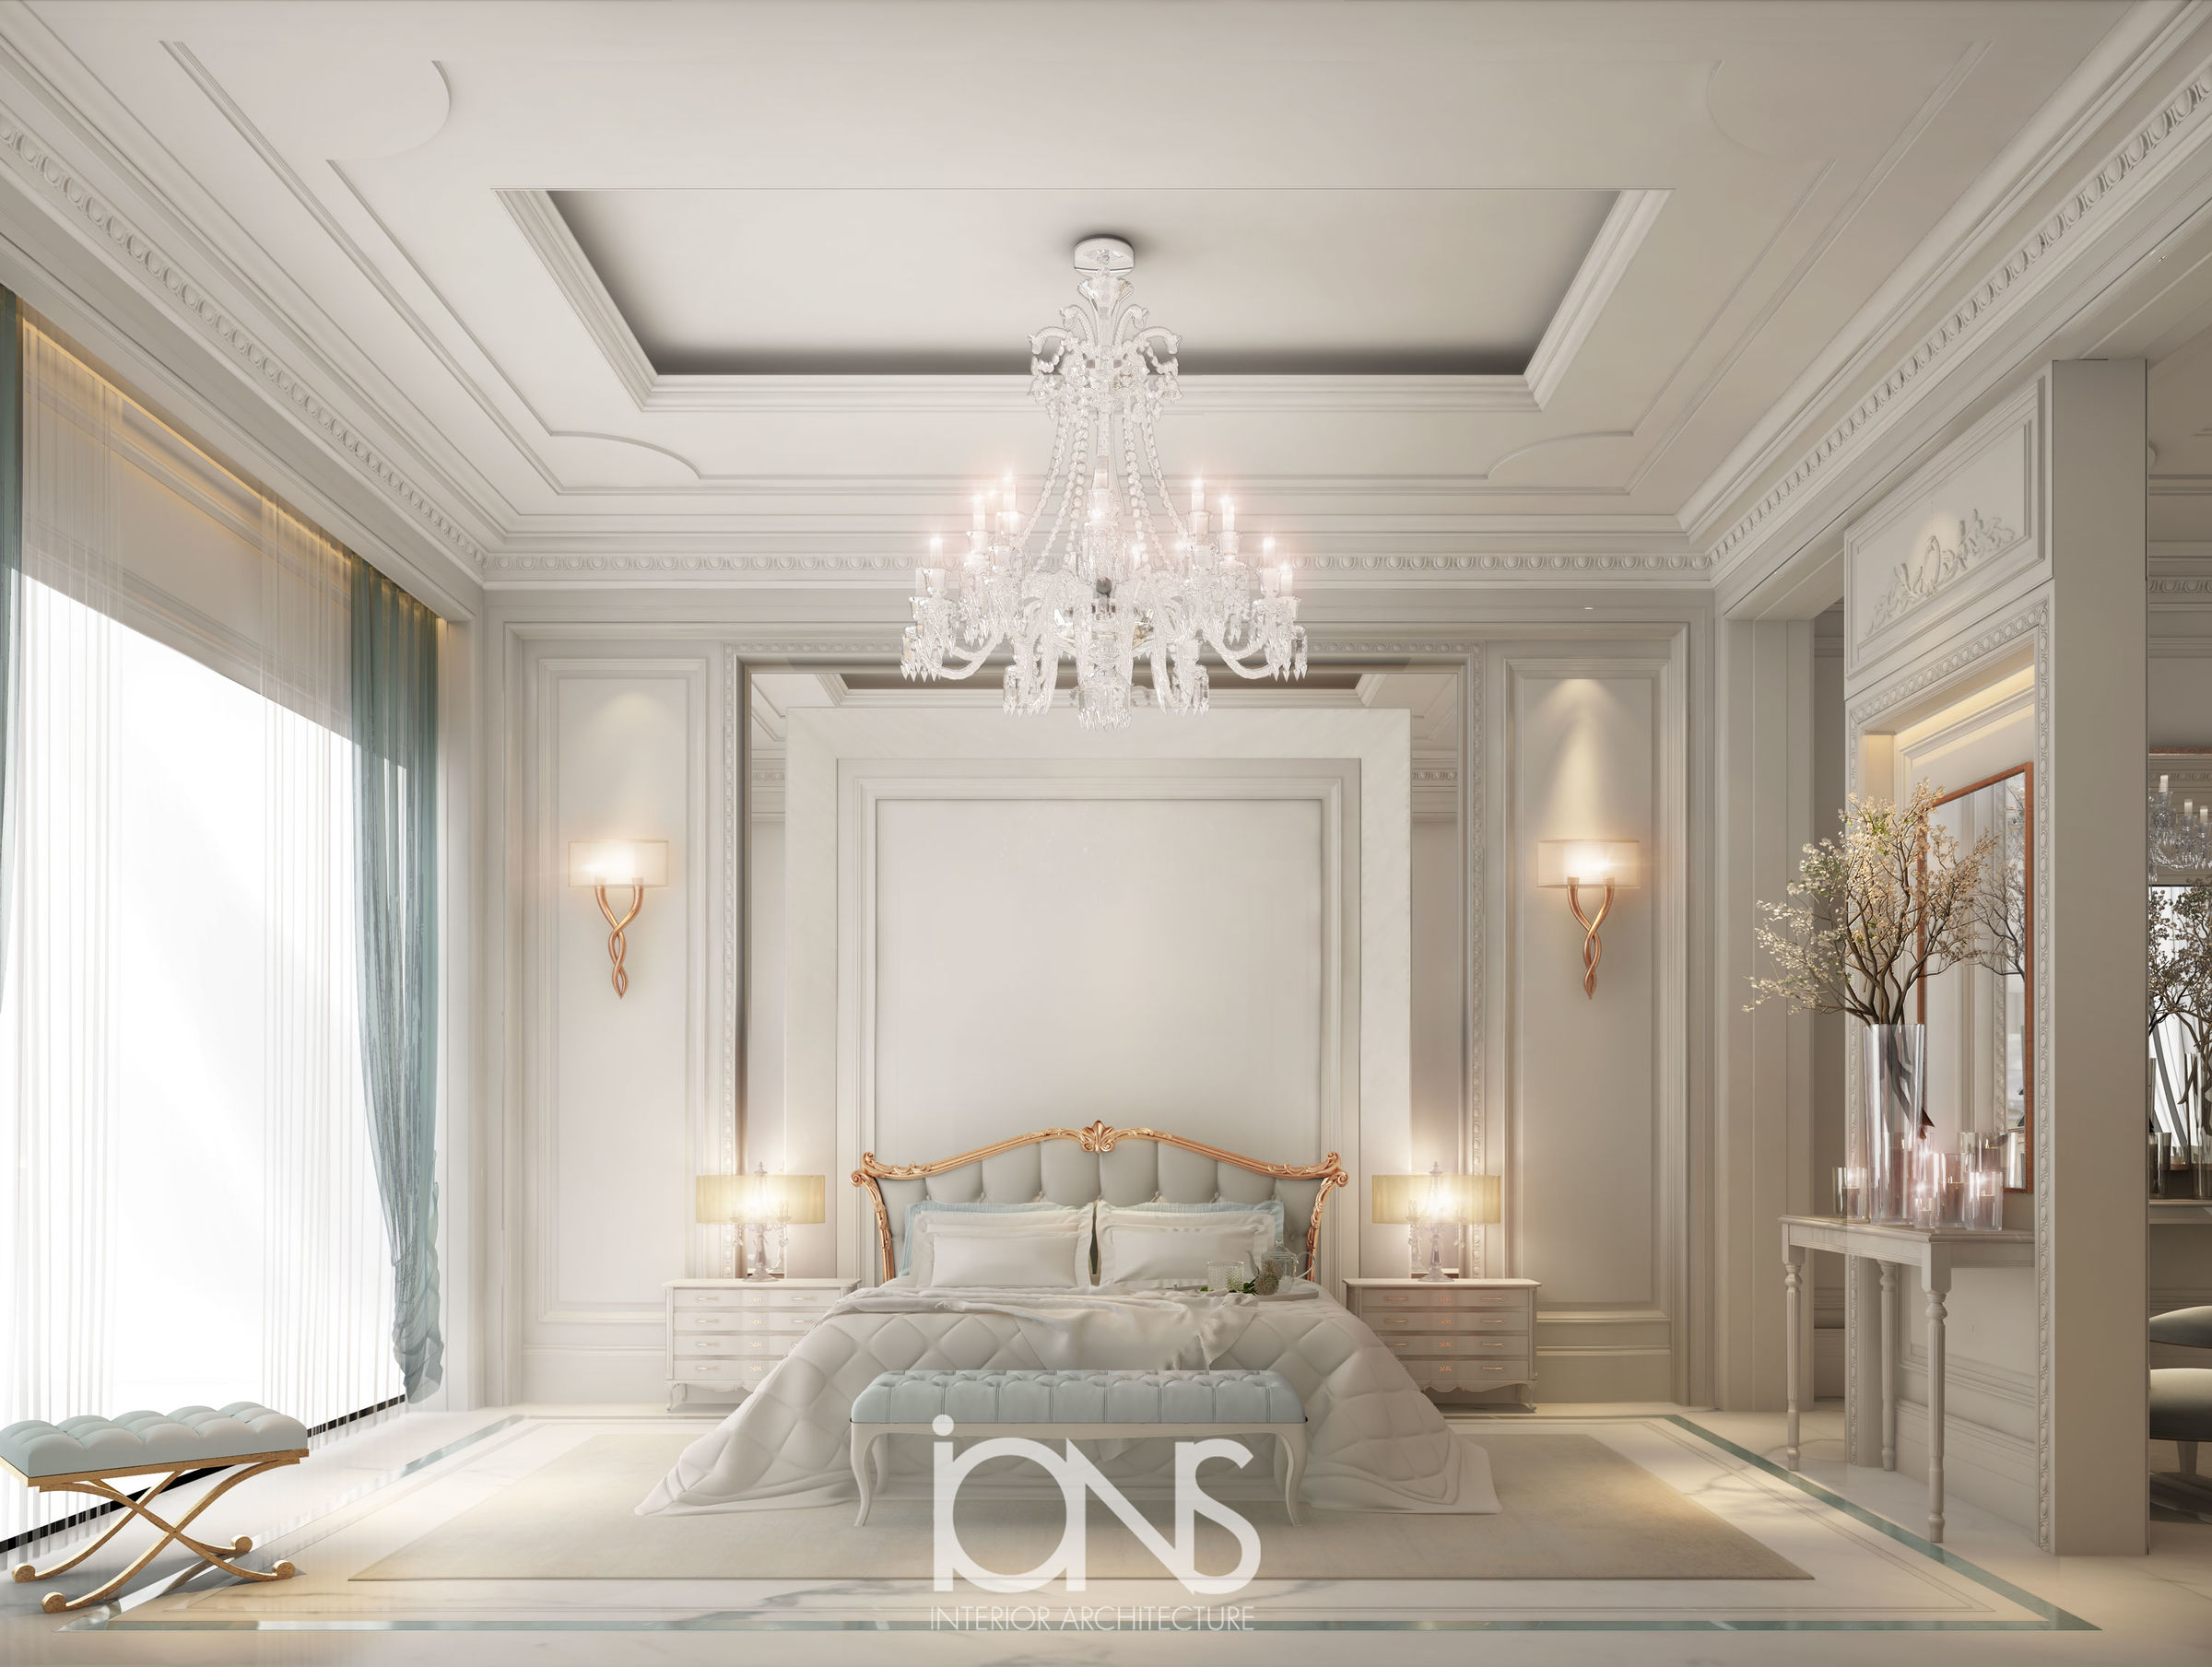 Ions Interior Design Dubai elegant neo classic master bedroom design | ions design